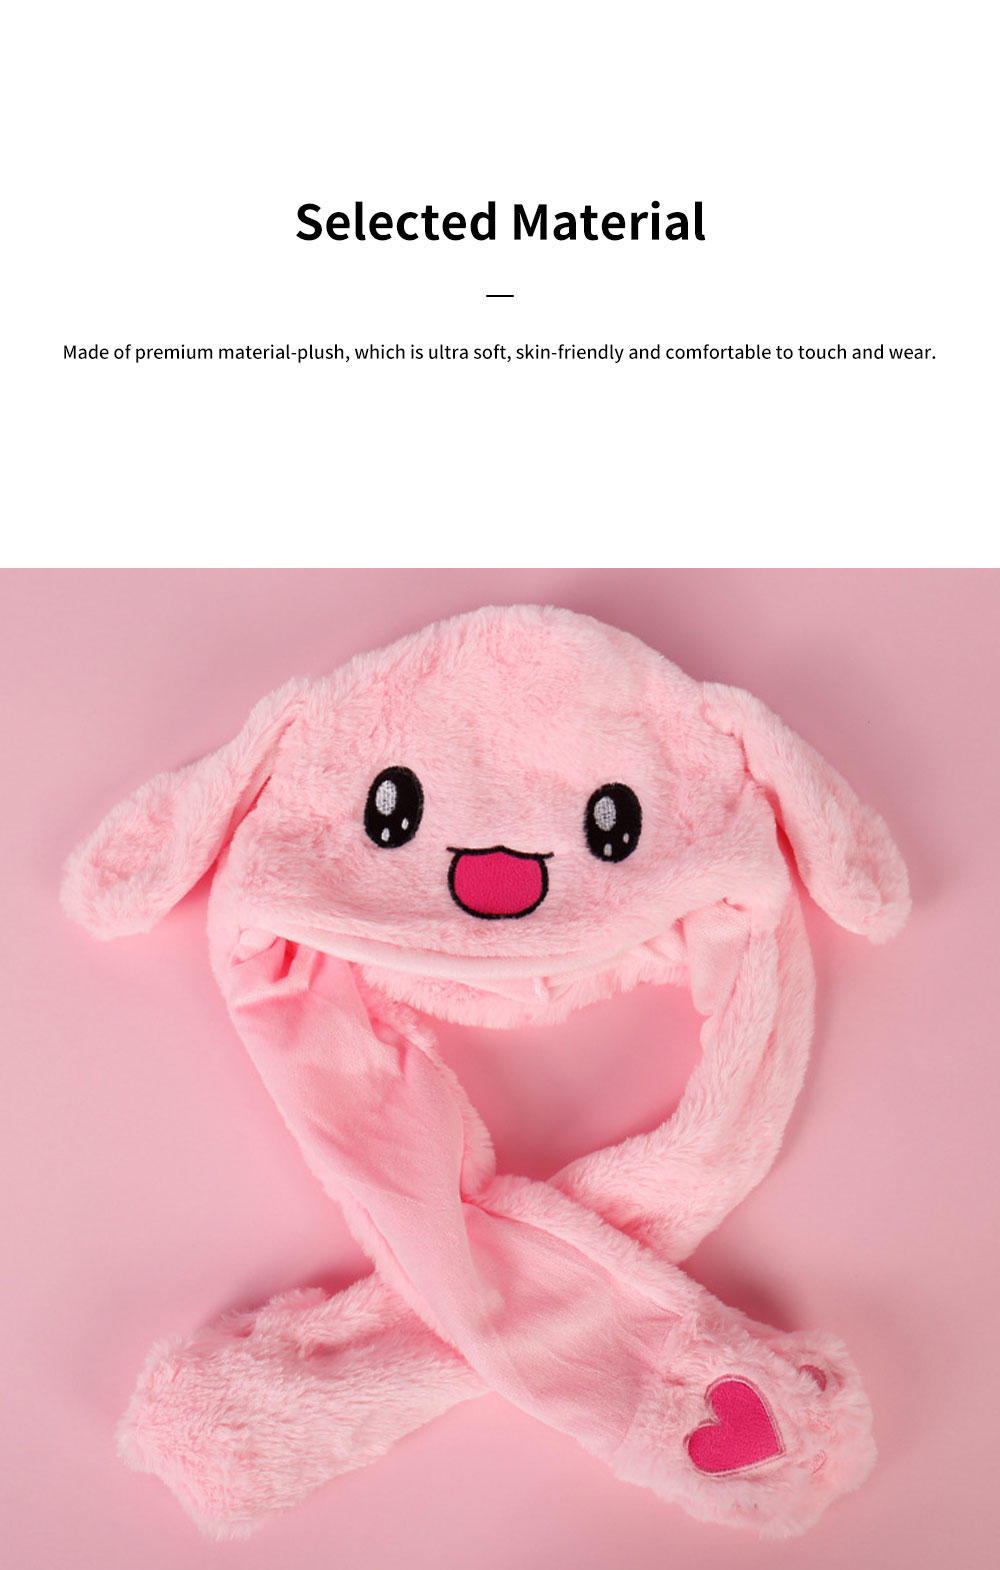 Cute Rabbit Hat Windproof Funny Plush Bunny Cap with Ears Pop Up and Colorful Light for Women Girls Christmas Gift 1